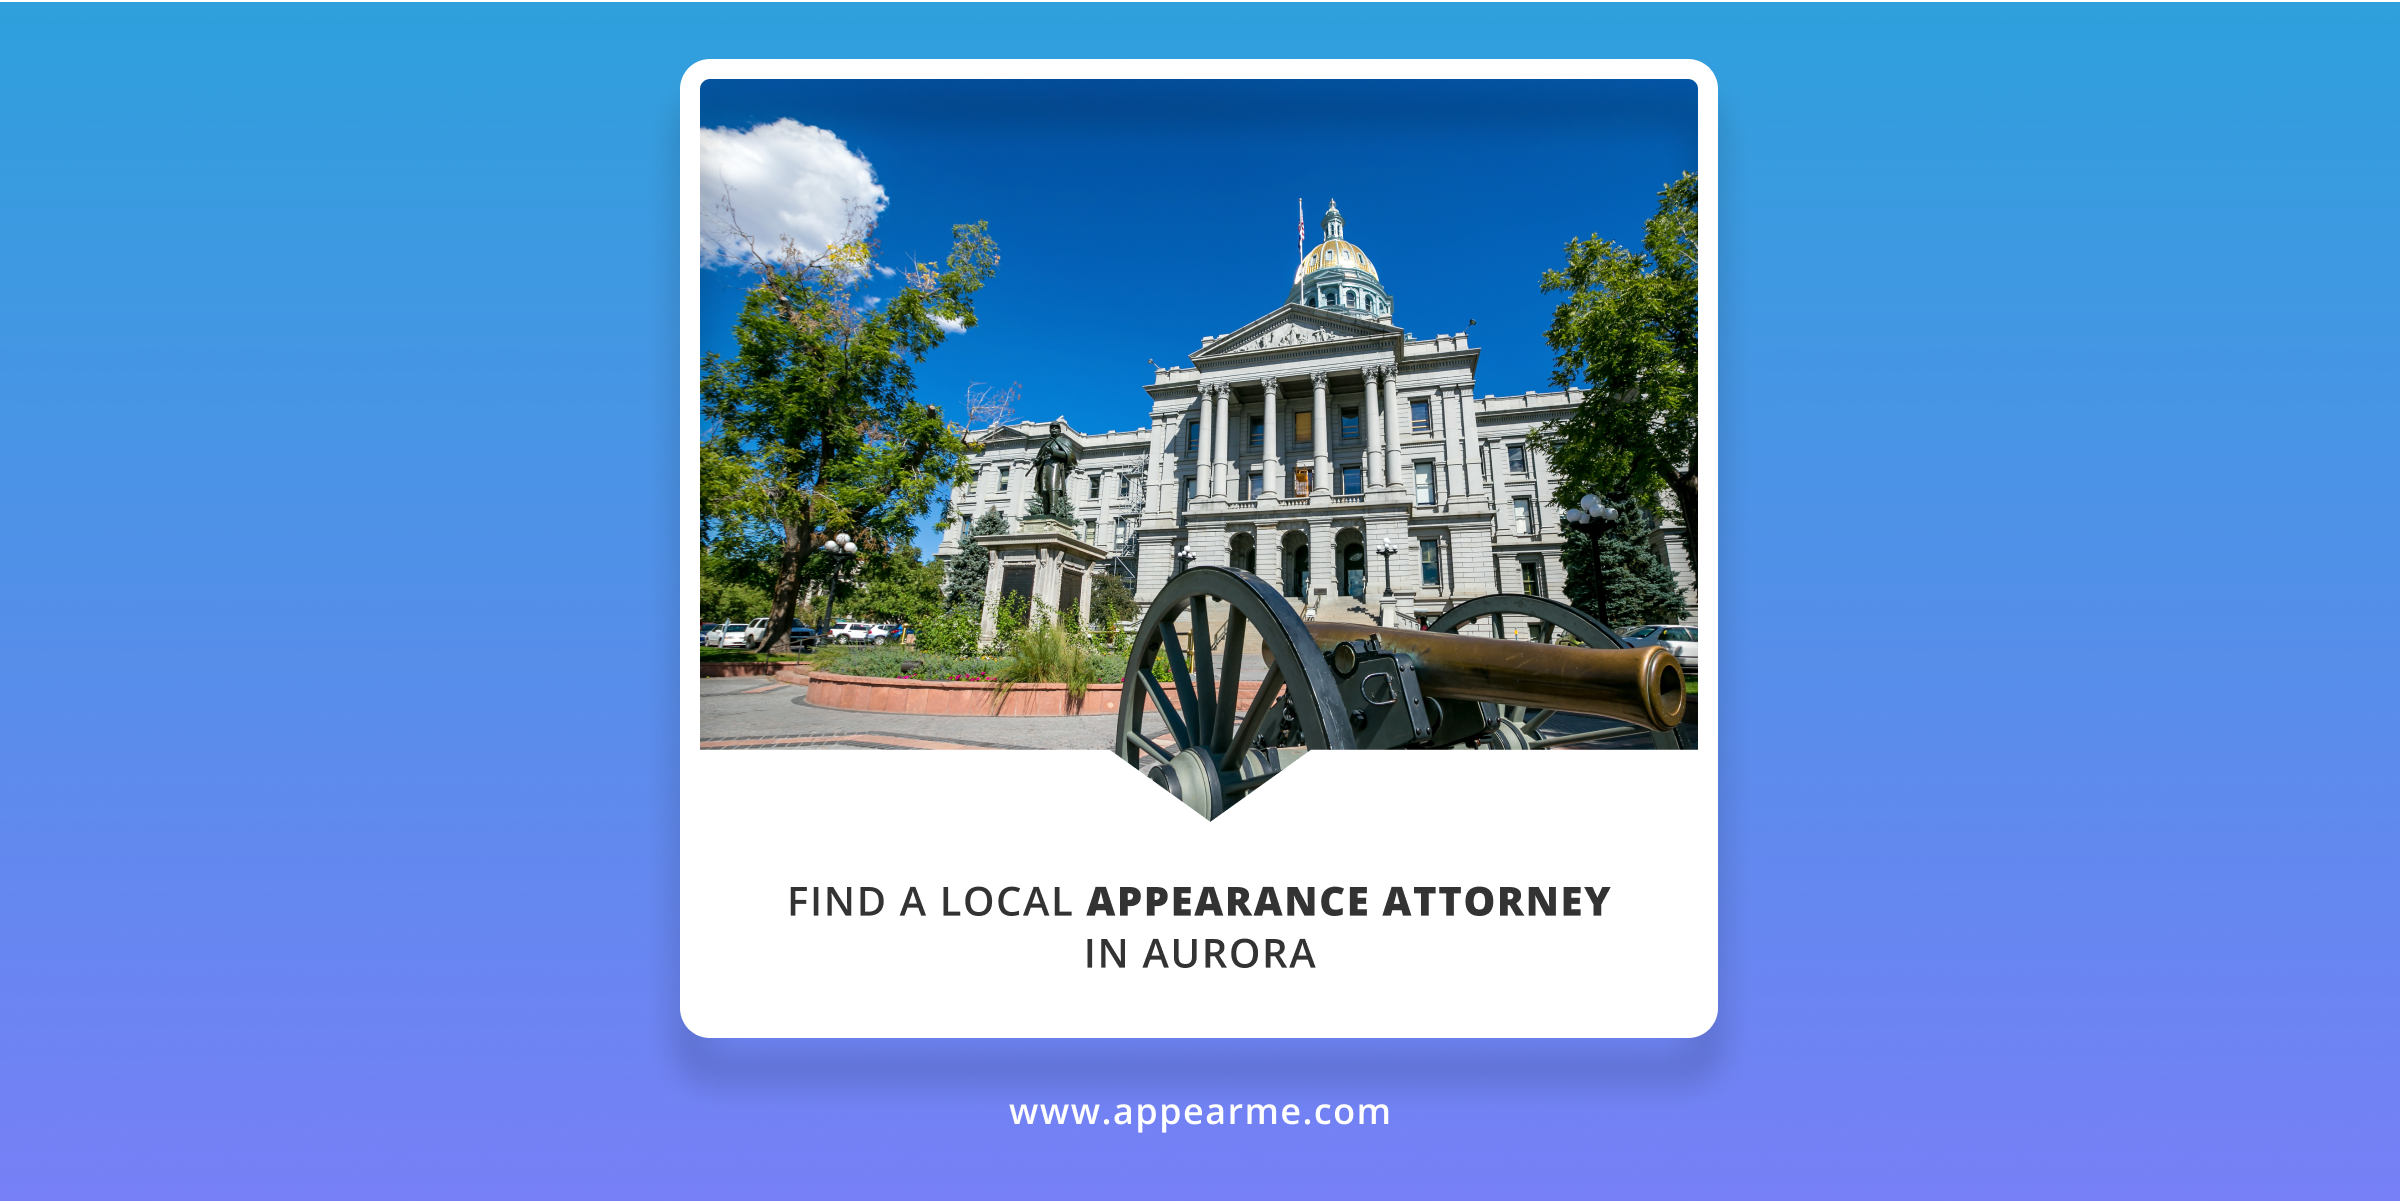 Find a Local Appearance Attorney in Aurora